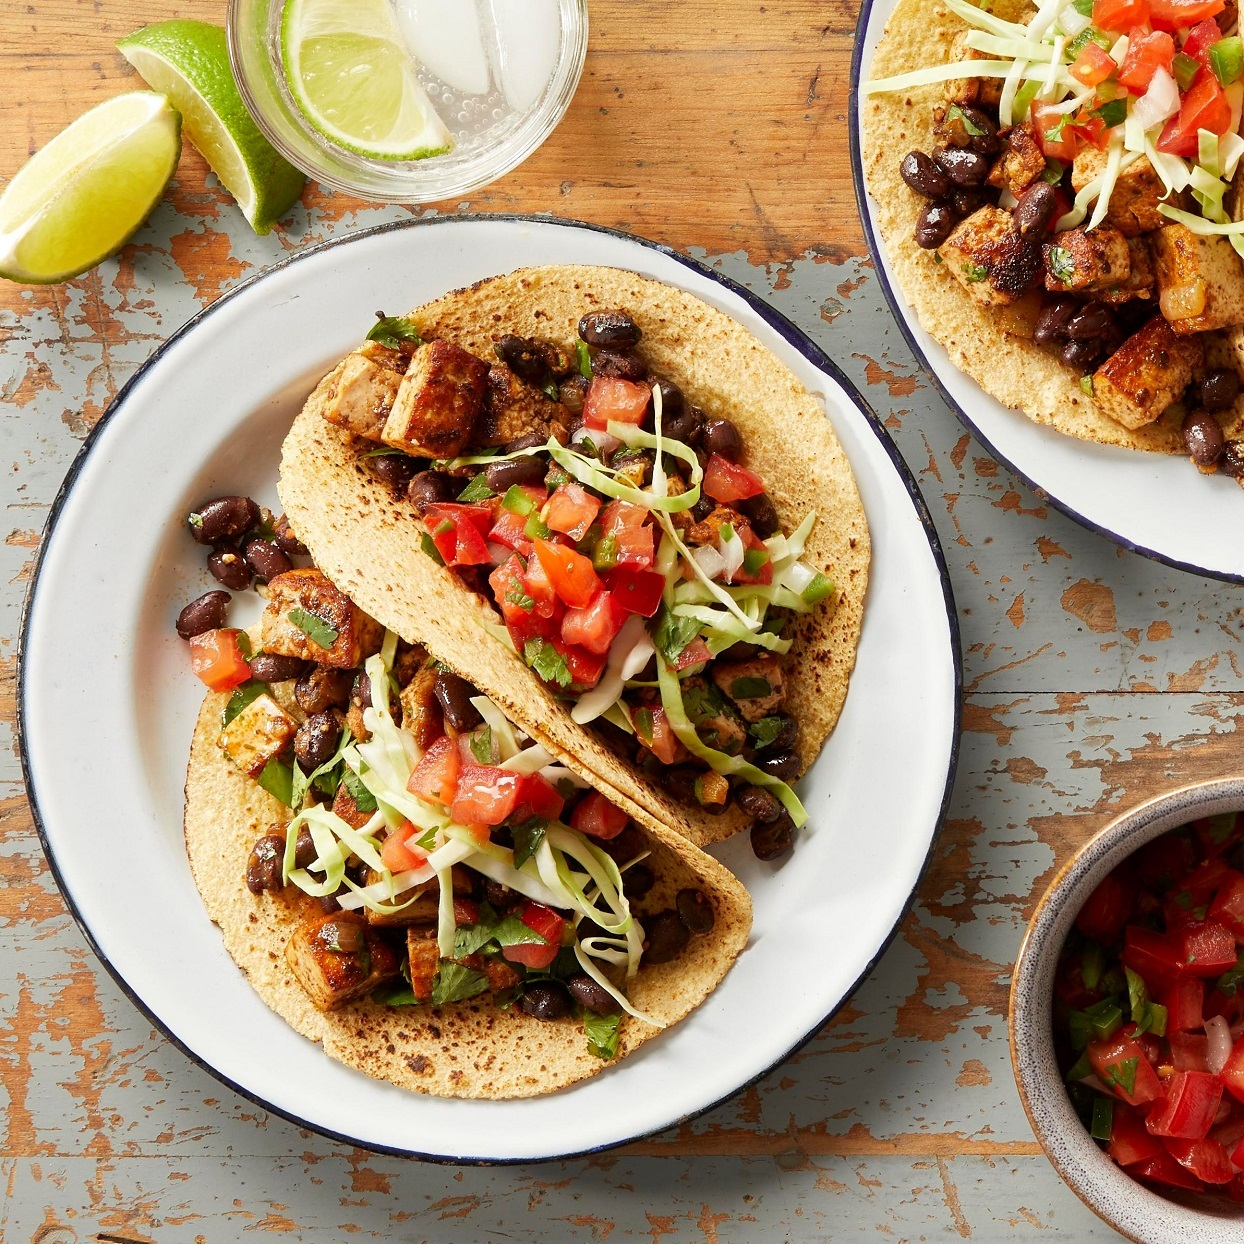 These quick vegan tacos, filled with a spicy tofu filling, make a perfect weeknight dinner. To keep them vegan, top them with shredded cabbage, fresh pico de gallo and guacamole. For vegetarians, add crumbled queso fresco. Source: EatingWell.com, January 2020